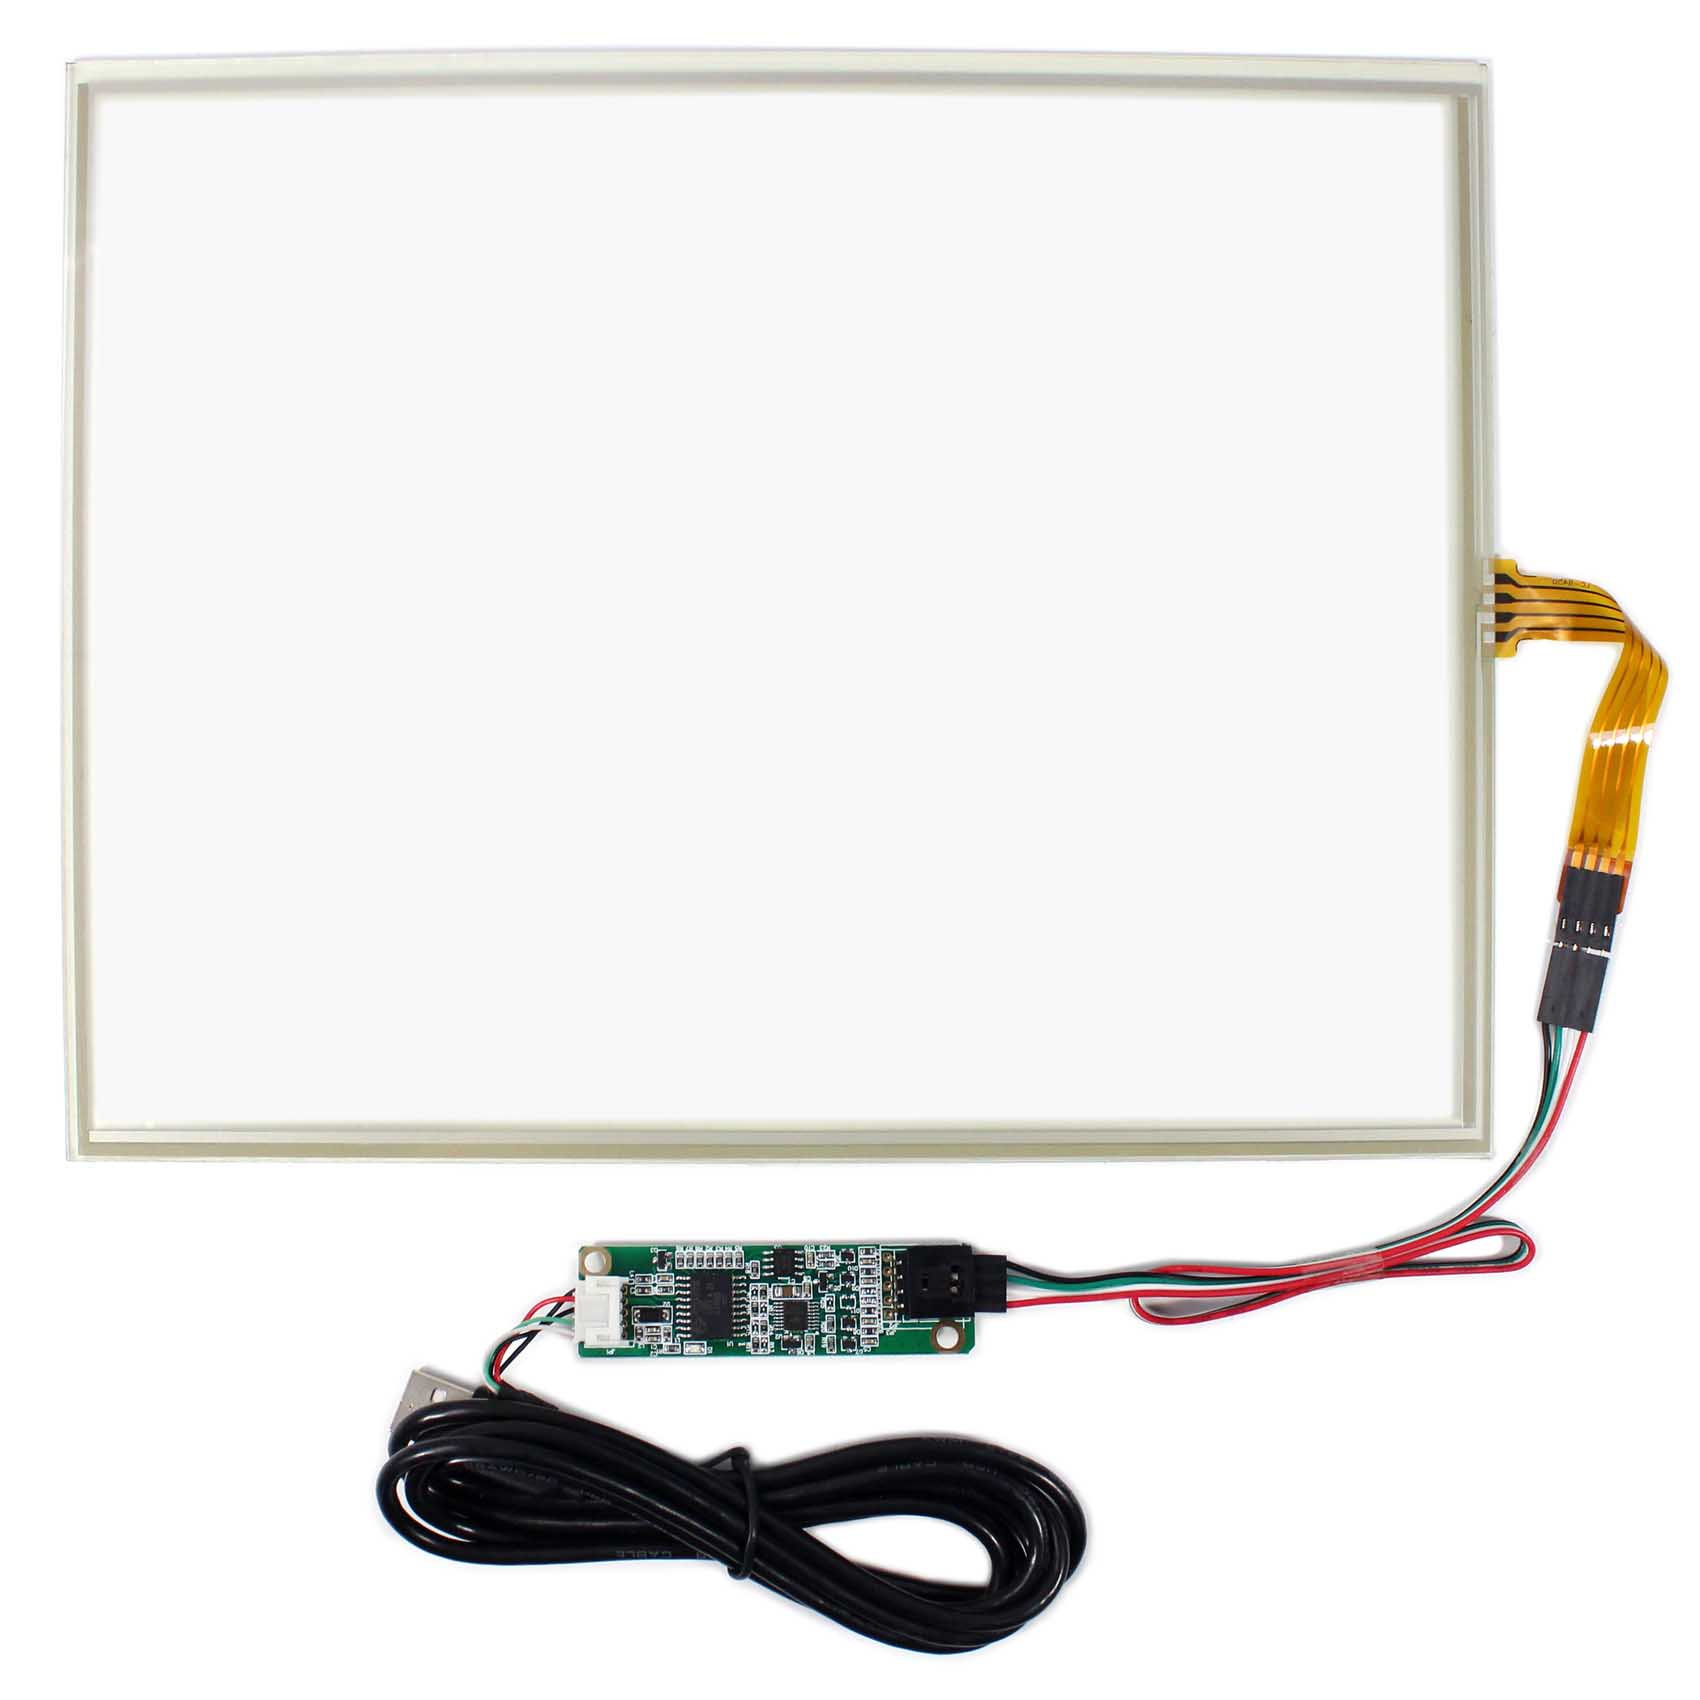 12.1inch 4-Wire Touch Panel USB Controller card for 12.1inch 1024x768 LCD Screen 10 2inch 4 wire touch panel with usb controller card for 10 2 lcd screen